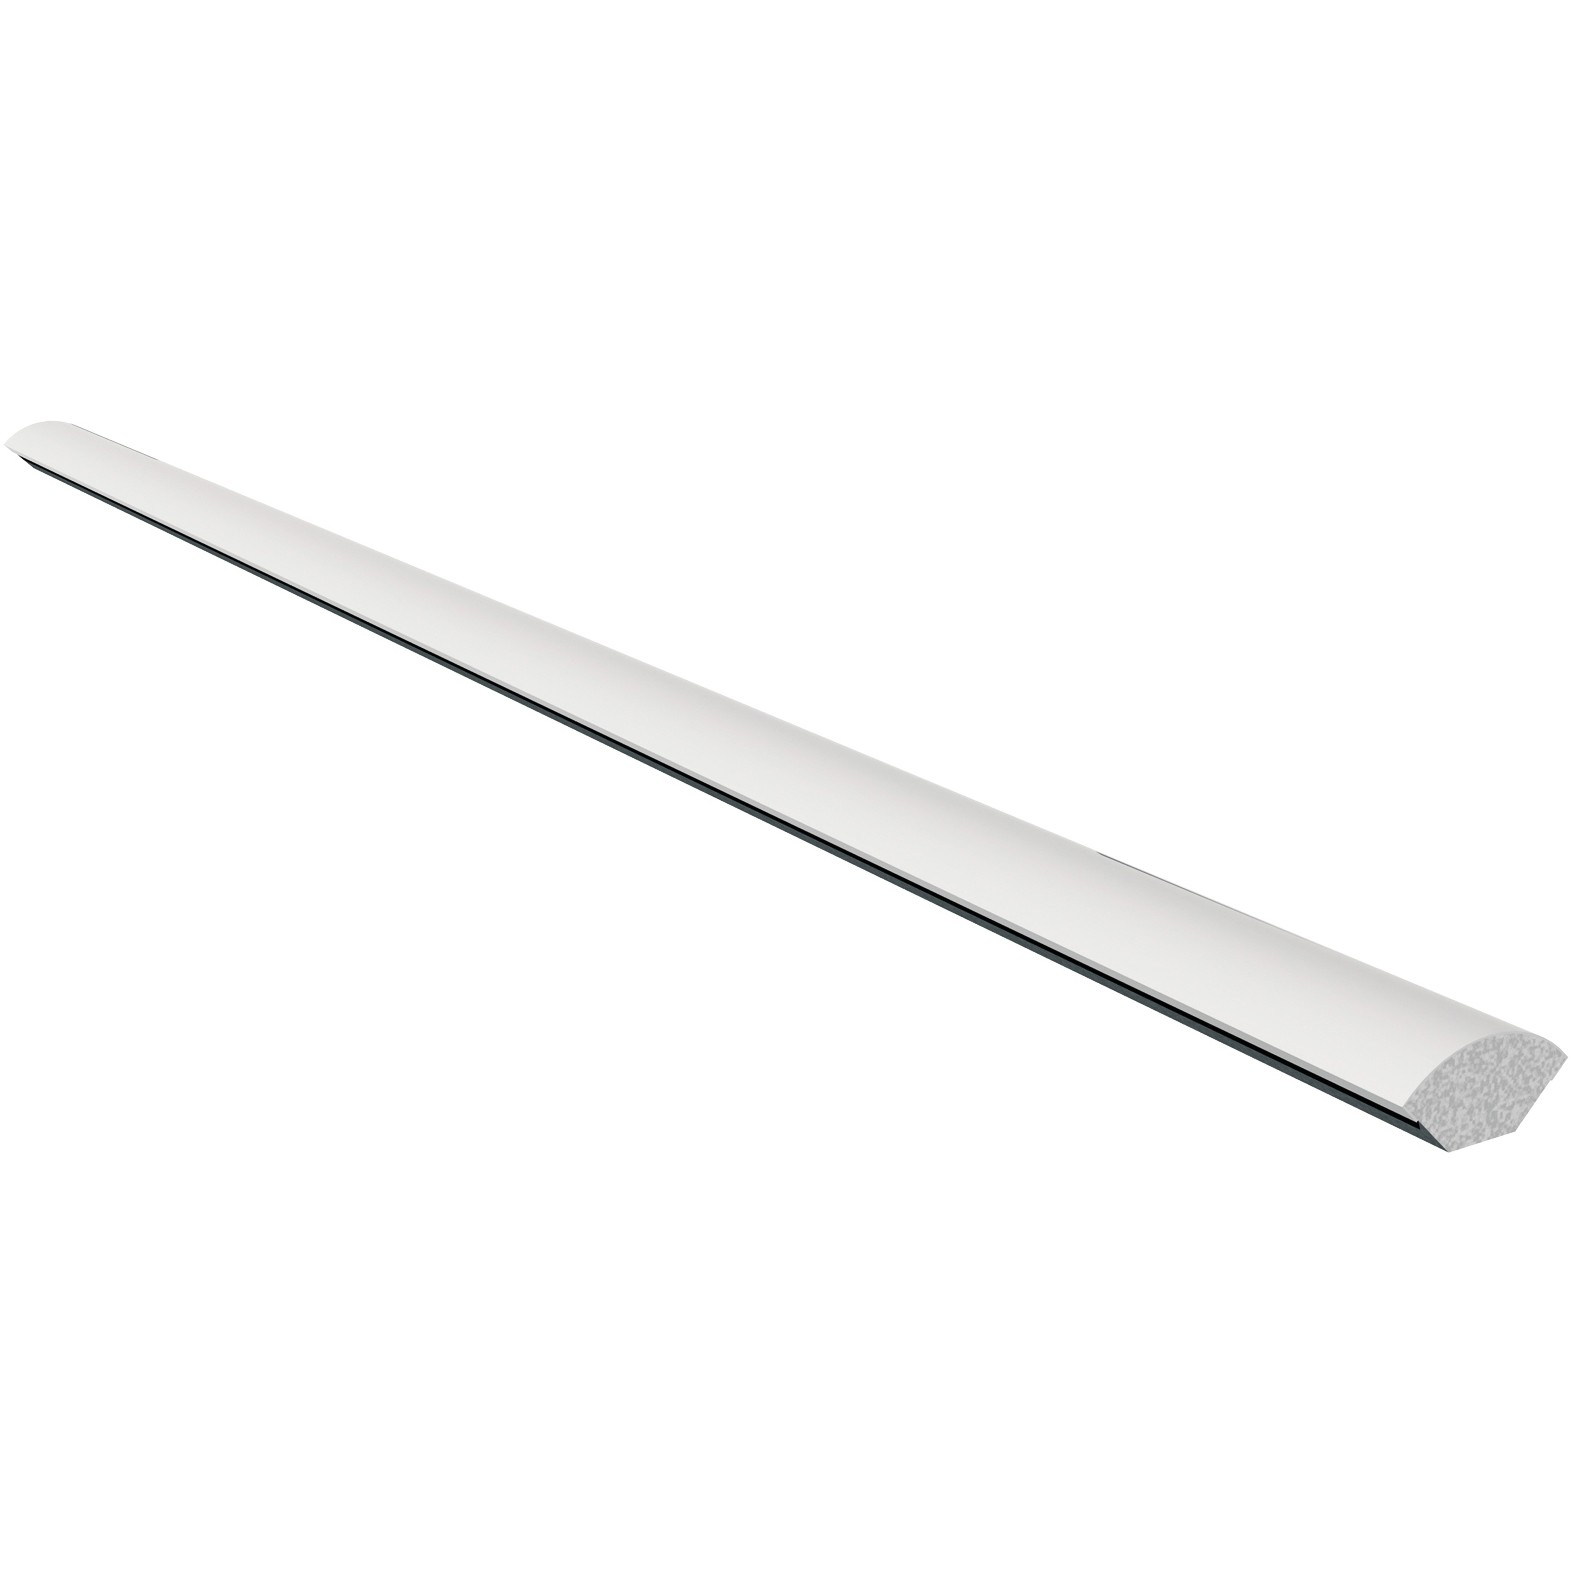 Freefoam Plastic Quadrant Window Trim - White, 12mm, 2.5 metre